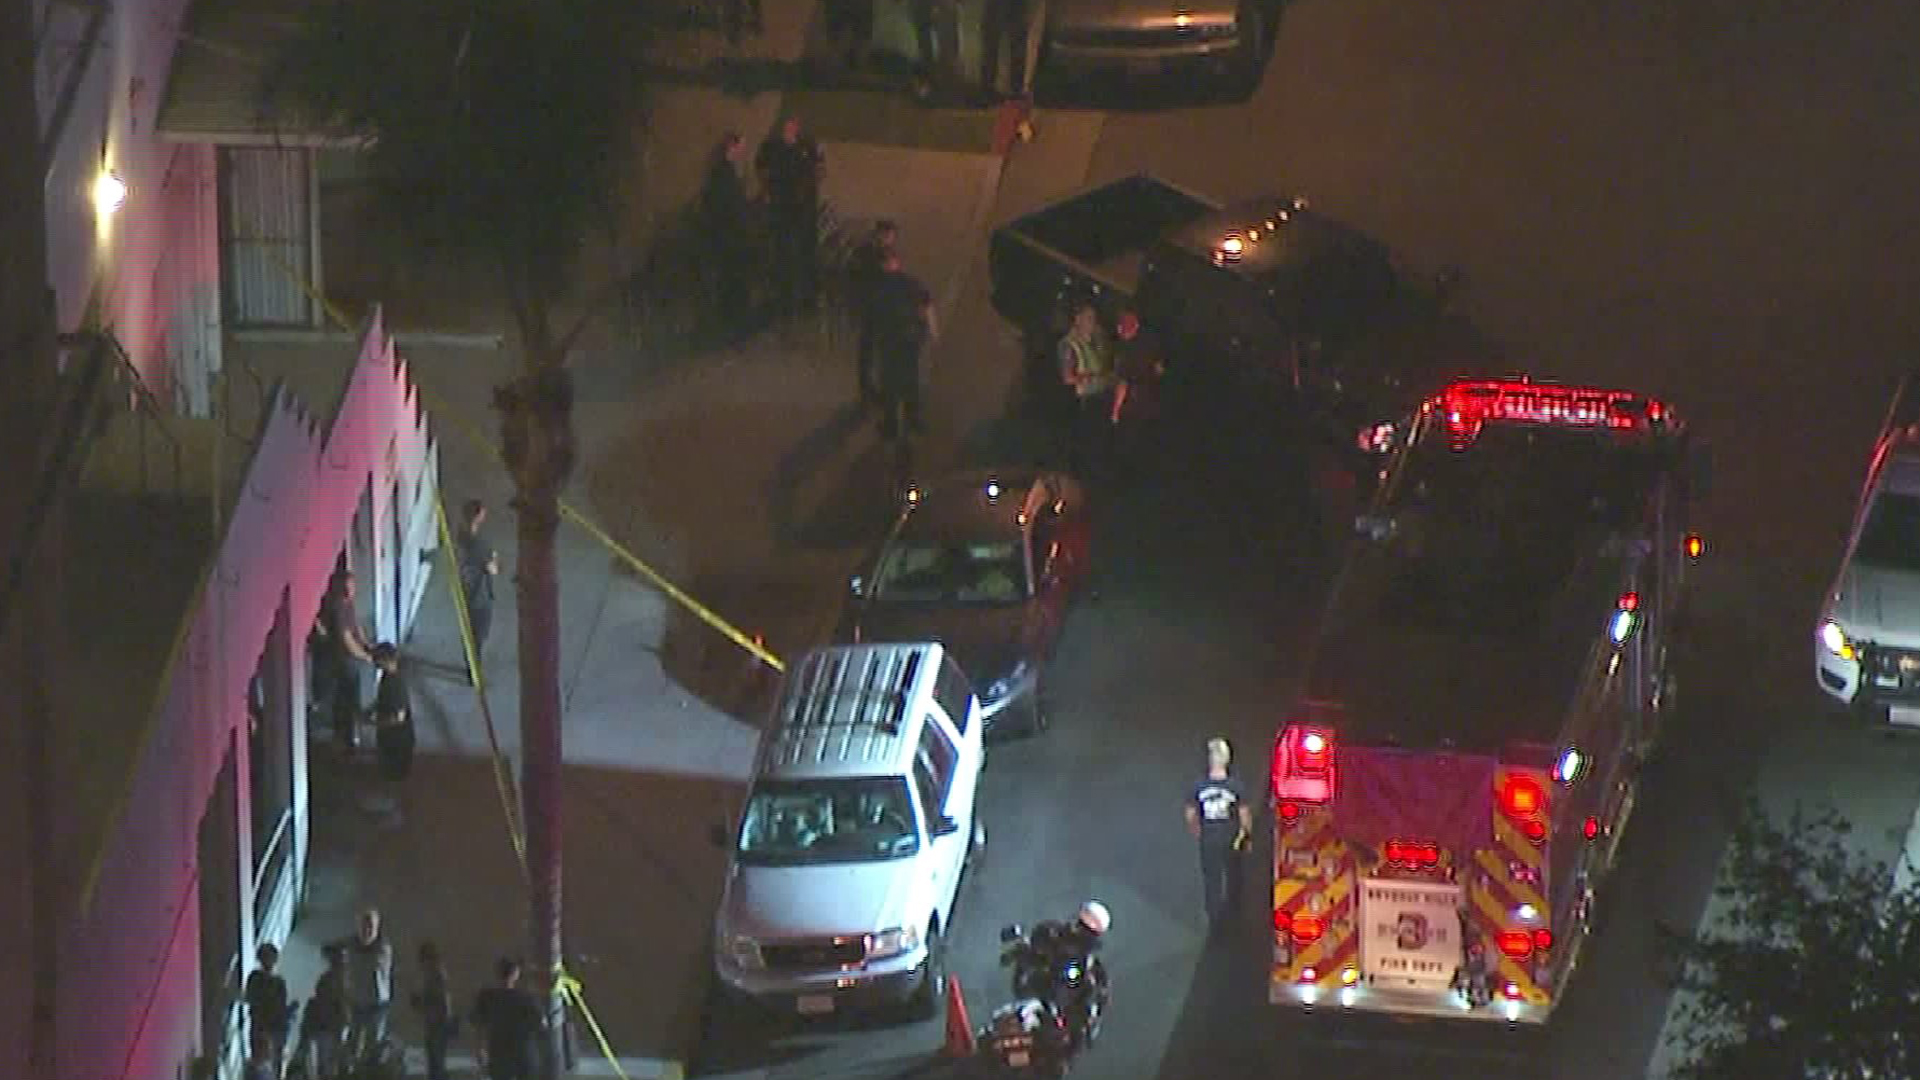 The scene of the crash in which Justin Bieber was the driver of a car that hit a pedestrian in Beverly Hills on July 26, 2017. (Credit: KTLA)